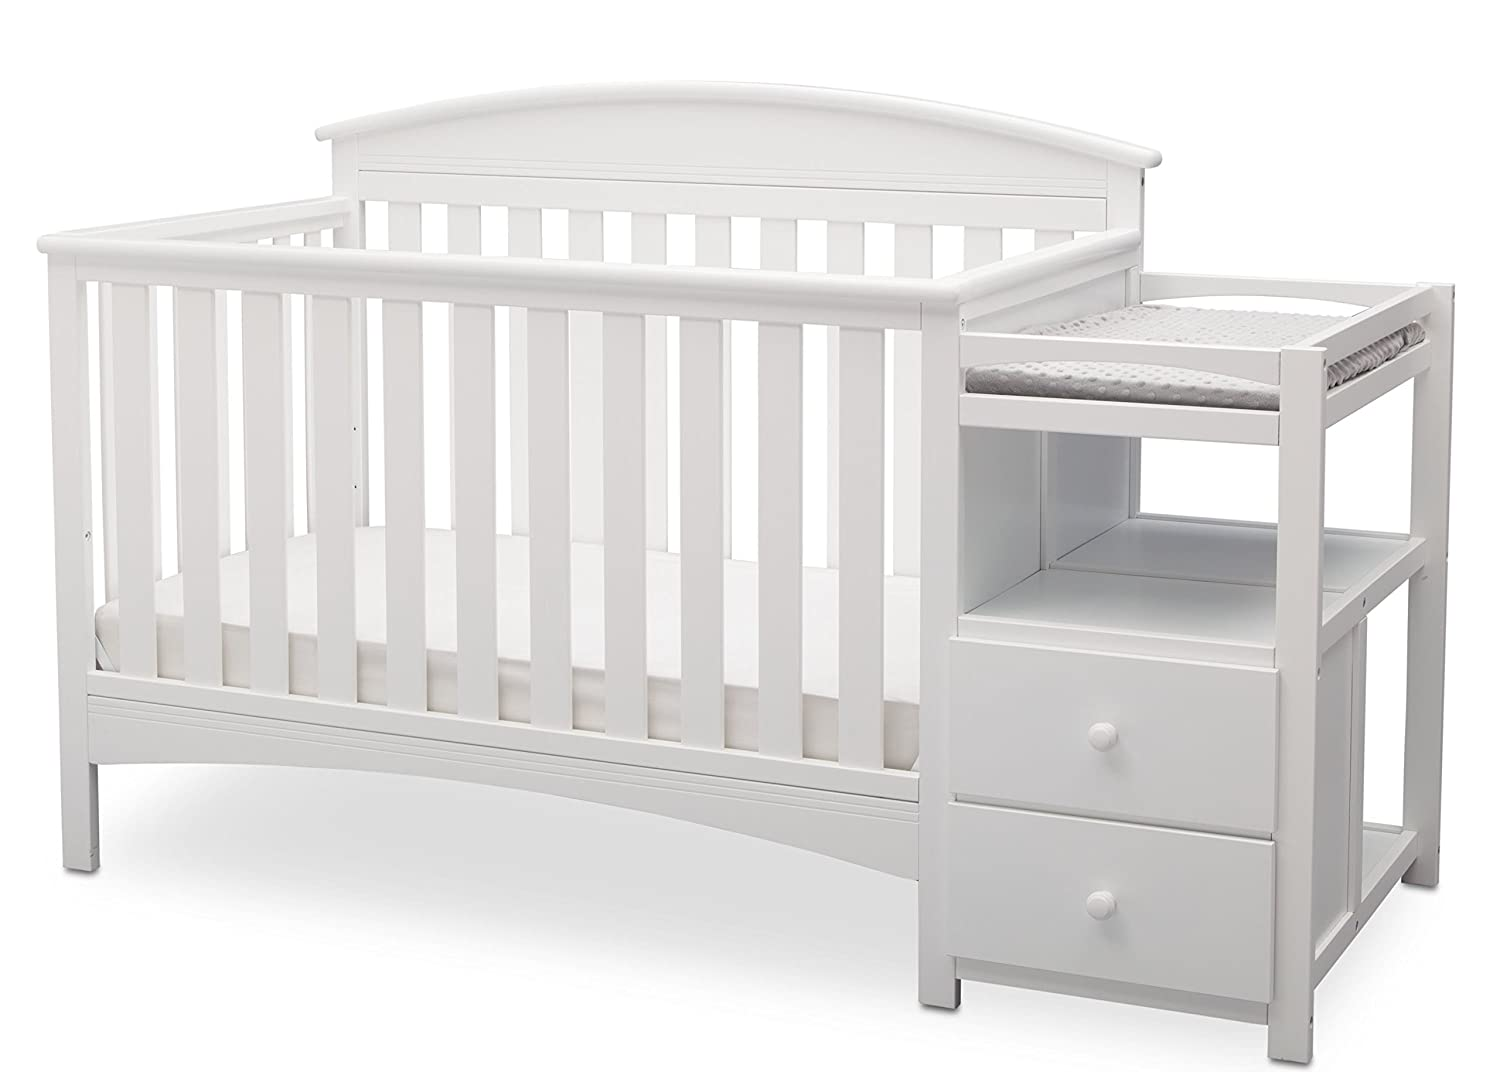 Delta Children Abby Convertible Crib 'N' Changer, Bianca 530160-130